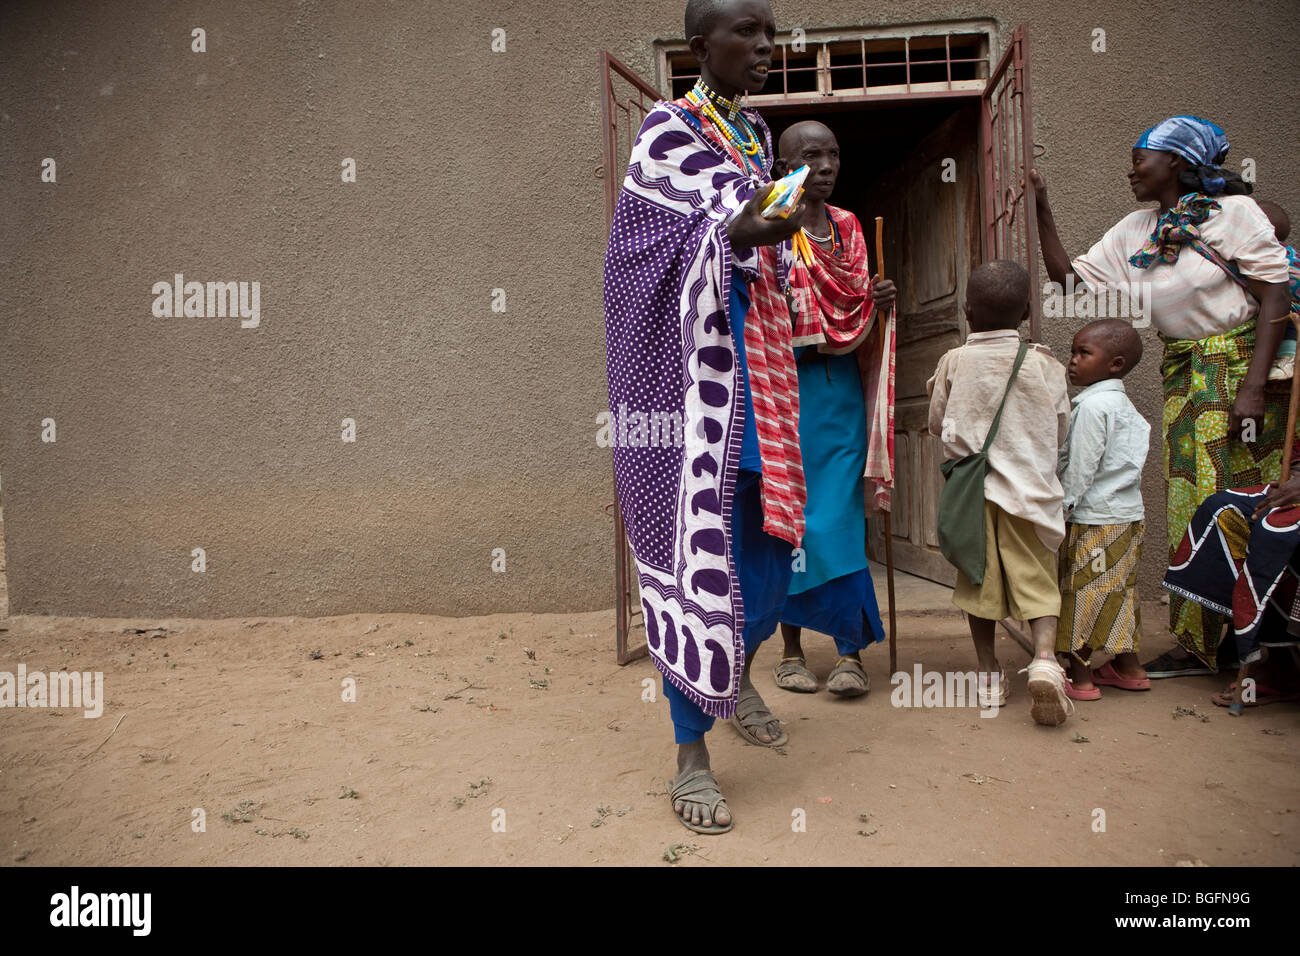 Maasai women exit a medical dispensary in Tanzania: Manyara Region, Simanjiro District, Kilombero Village. - Stock Image